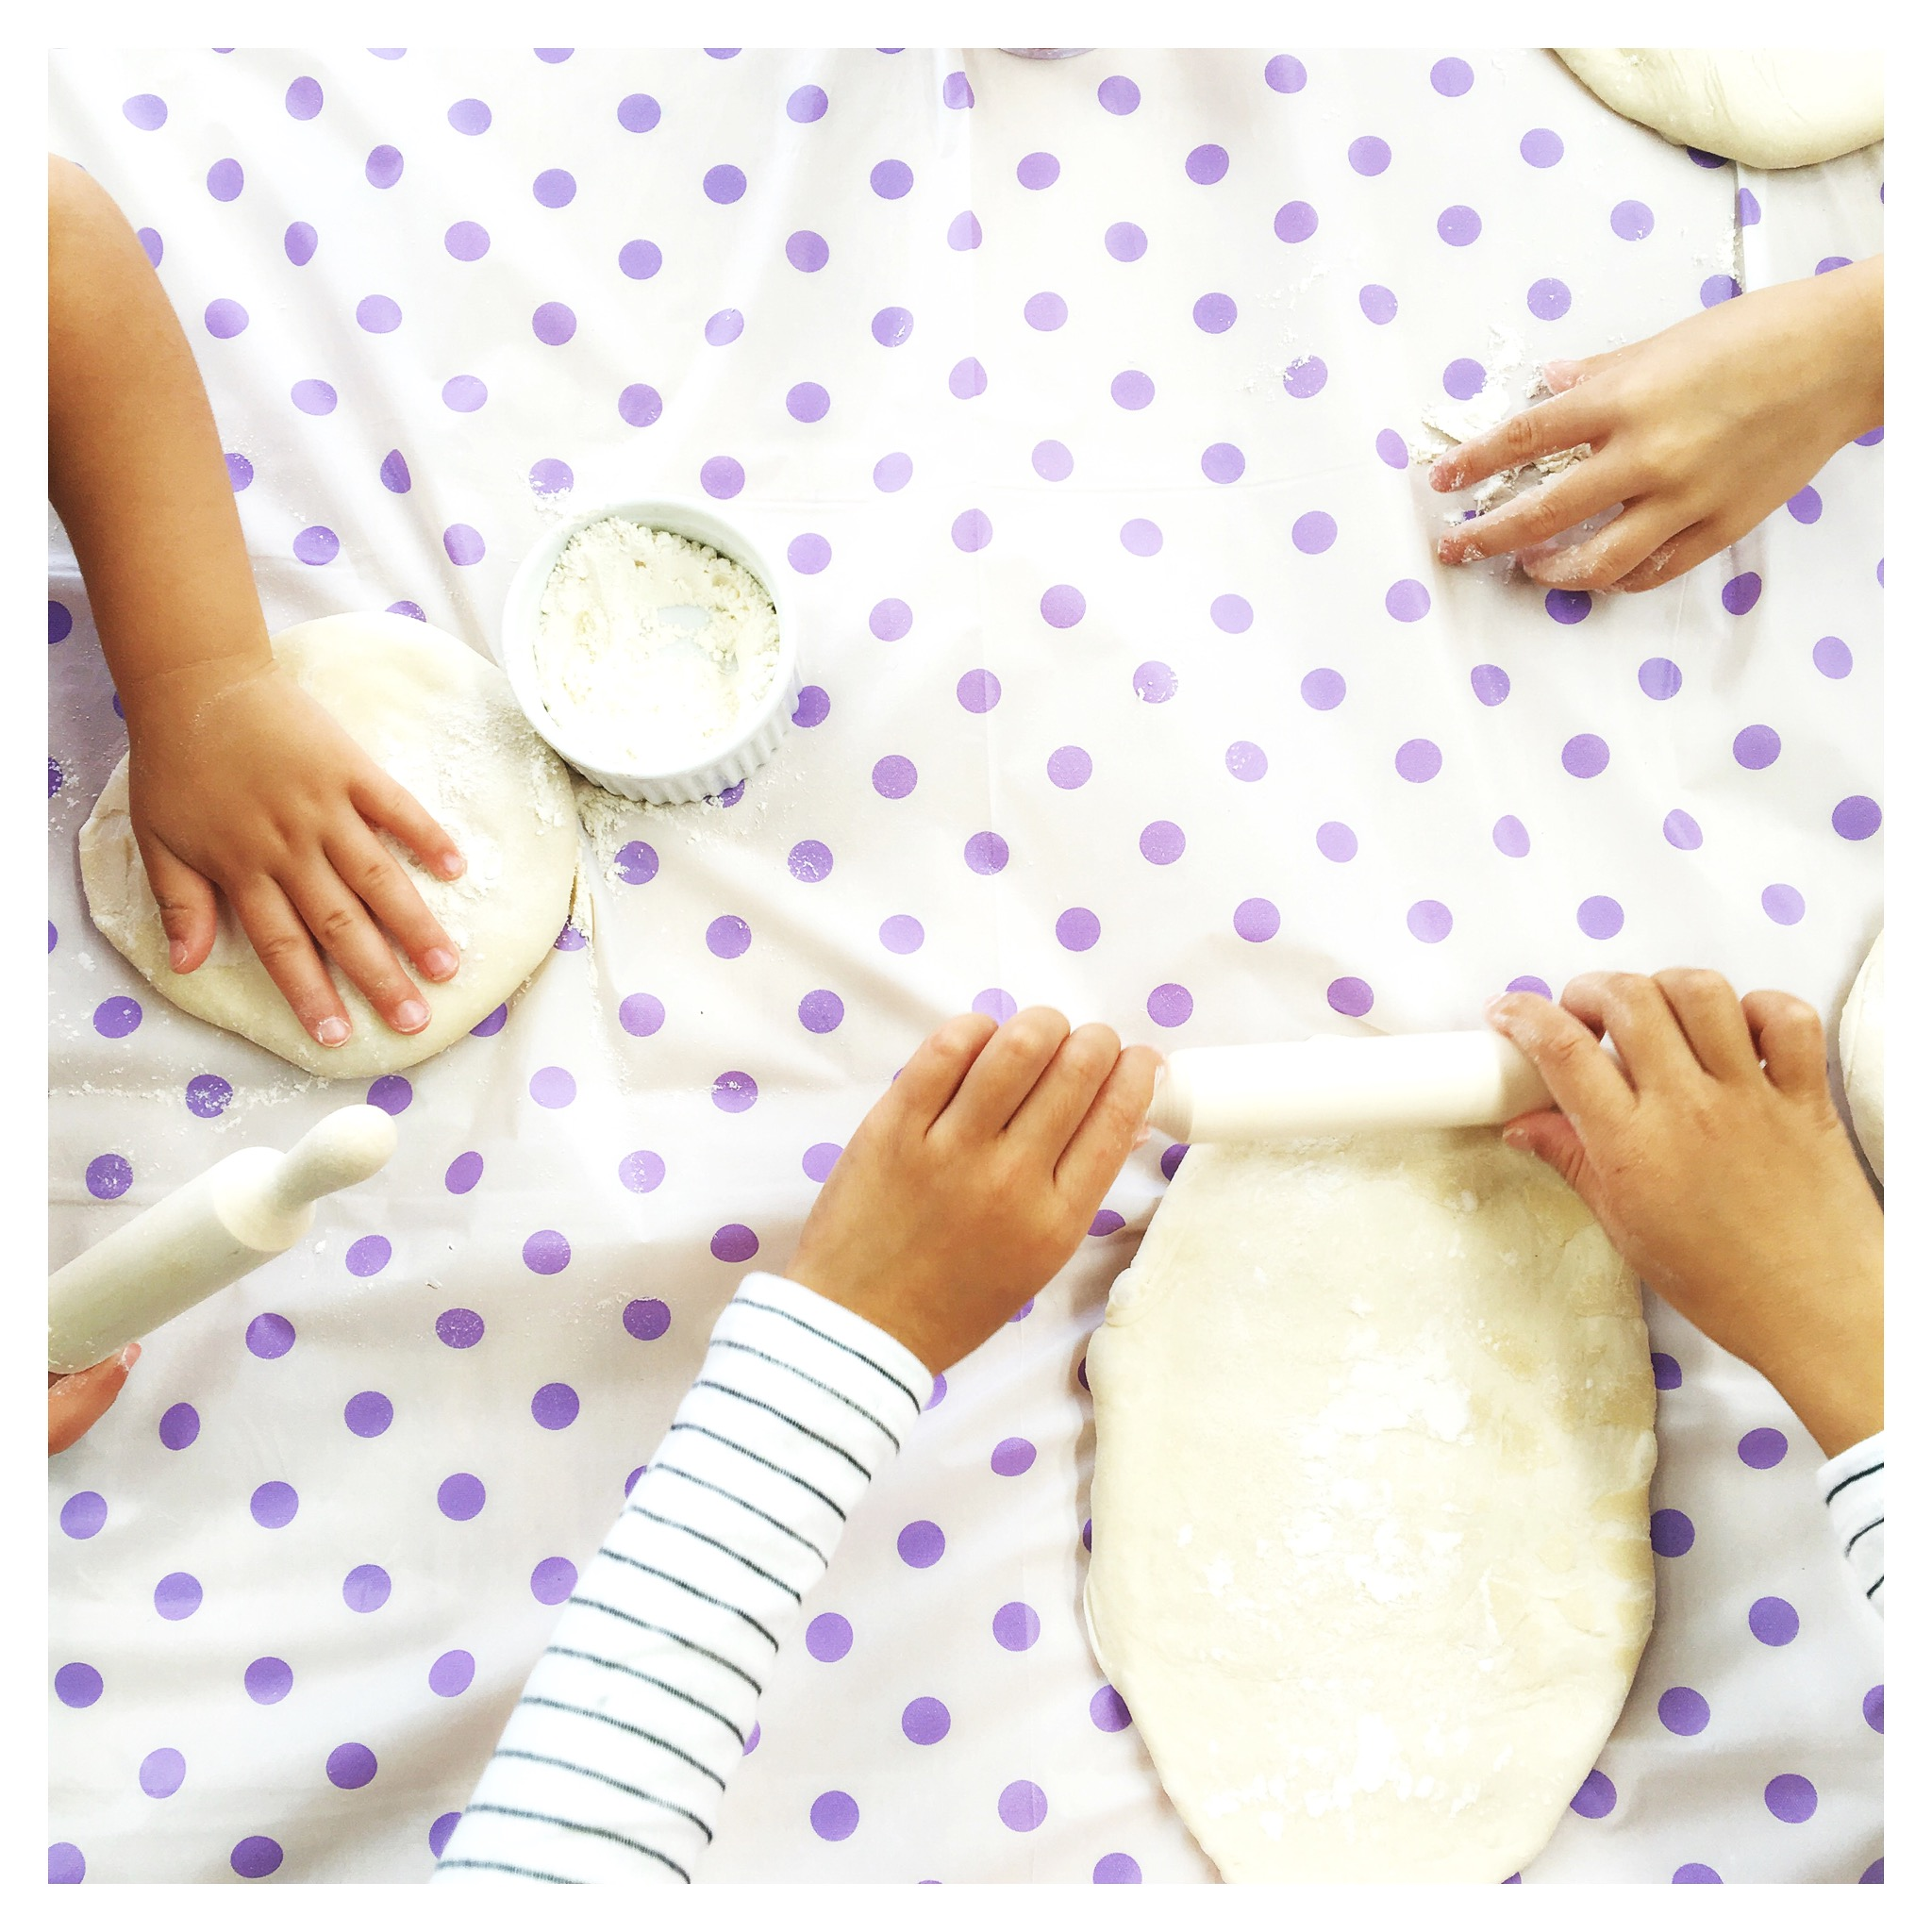 Here are 9 fun and simple sensory play ideas that have been popular at our place.